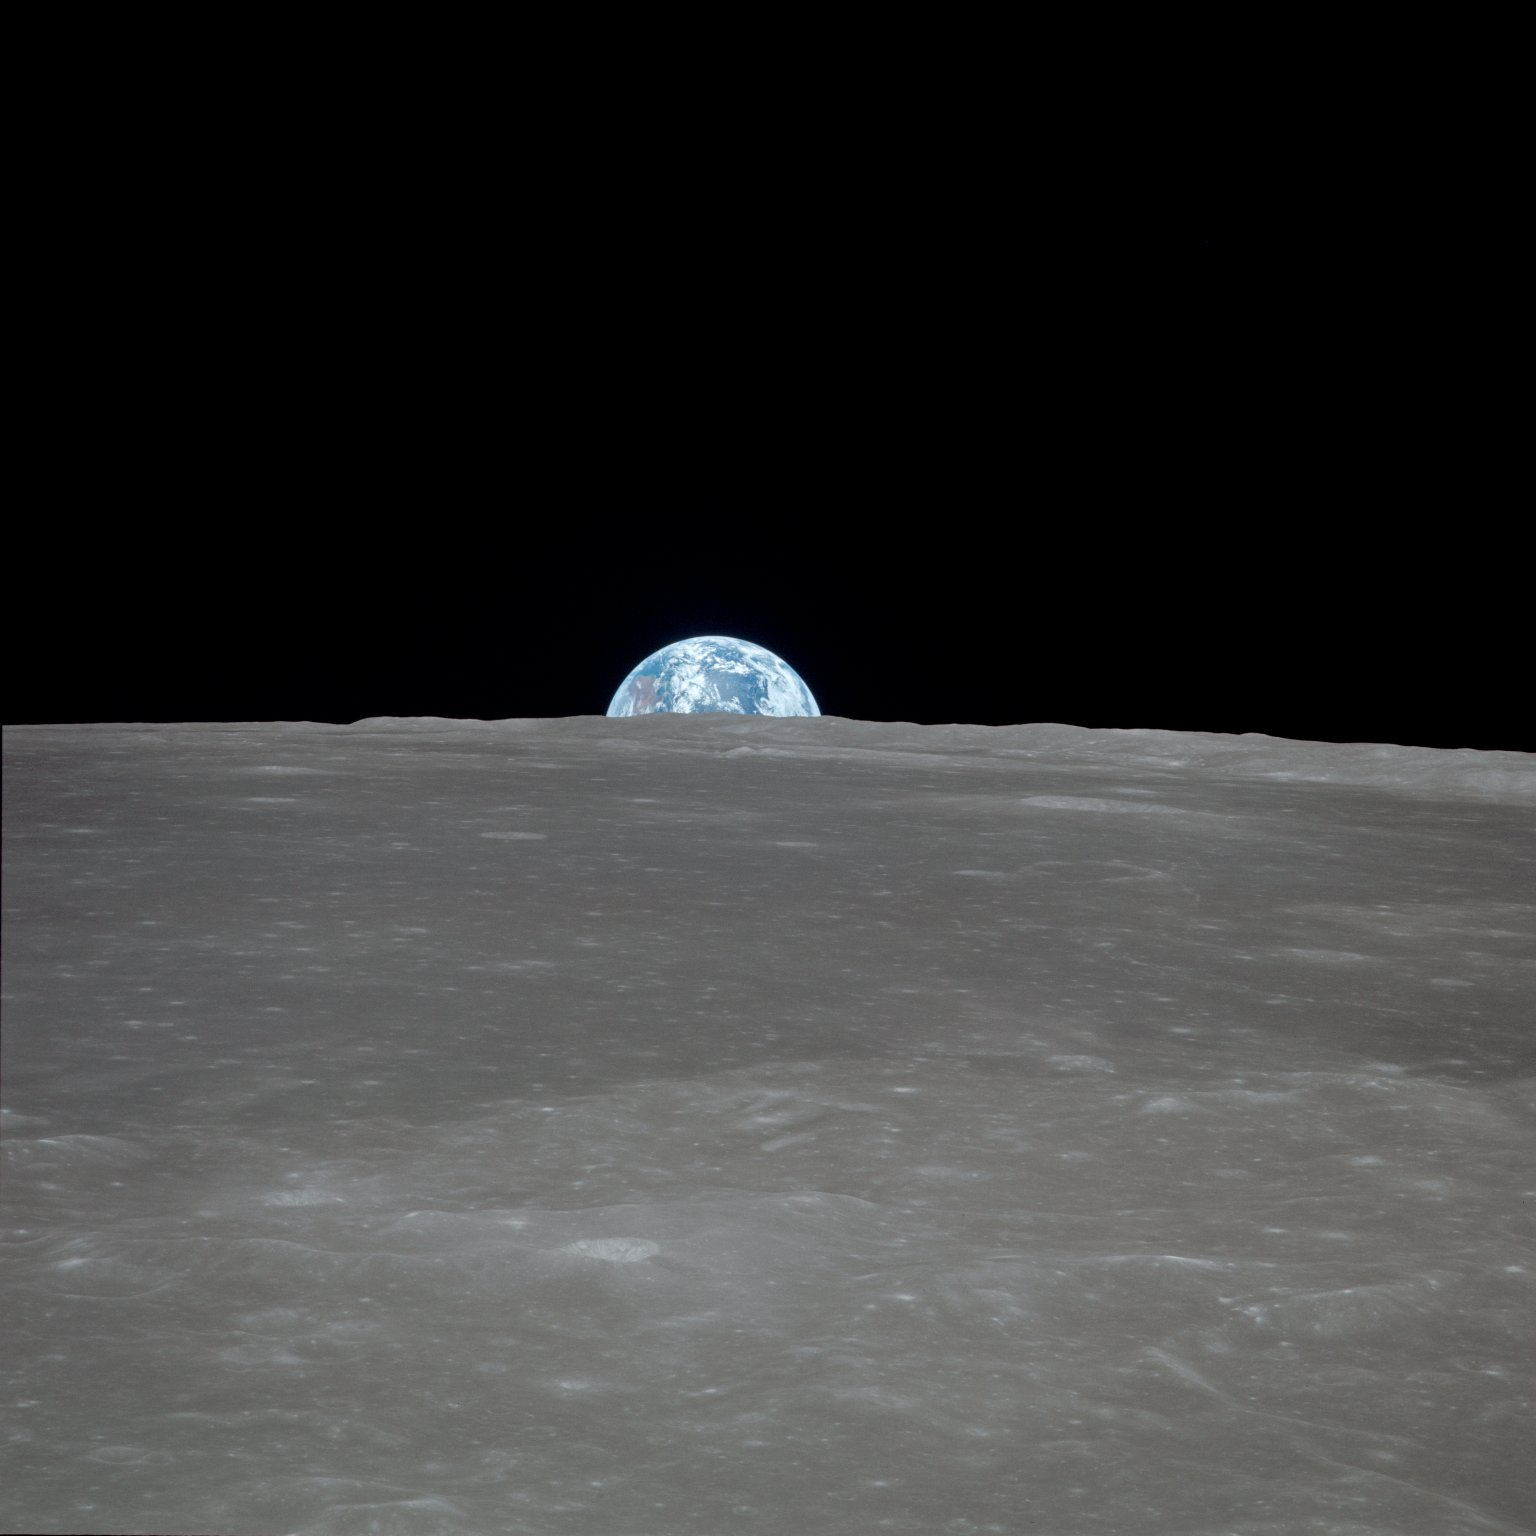 1465783930_Apollo_11_Mission_Image_-_View_of_moon_limb_with_Earth_on_the_horizon_Mare_Smythii_Region_(5052744654).jpg.9ed6033c2ee44081882baf72ba6ce6c4.jpg